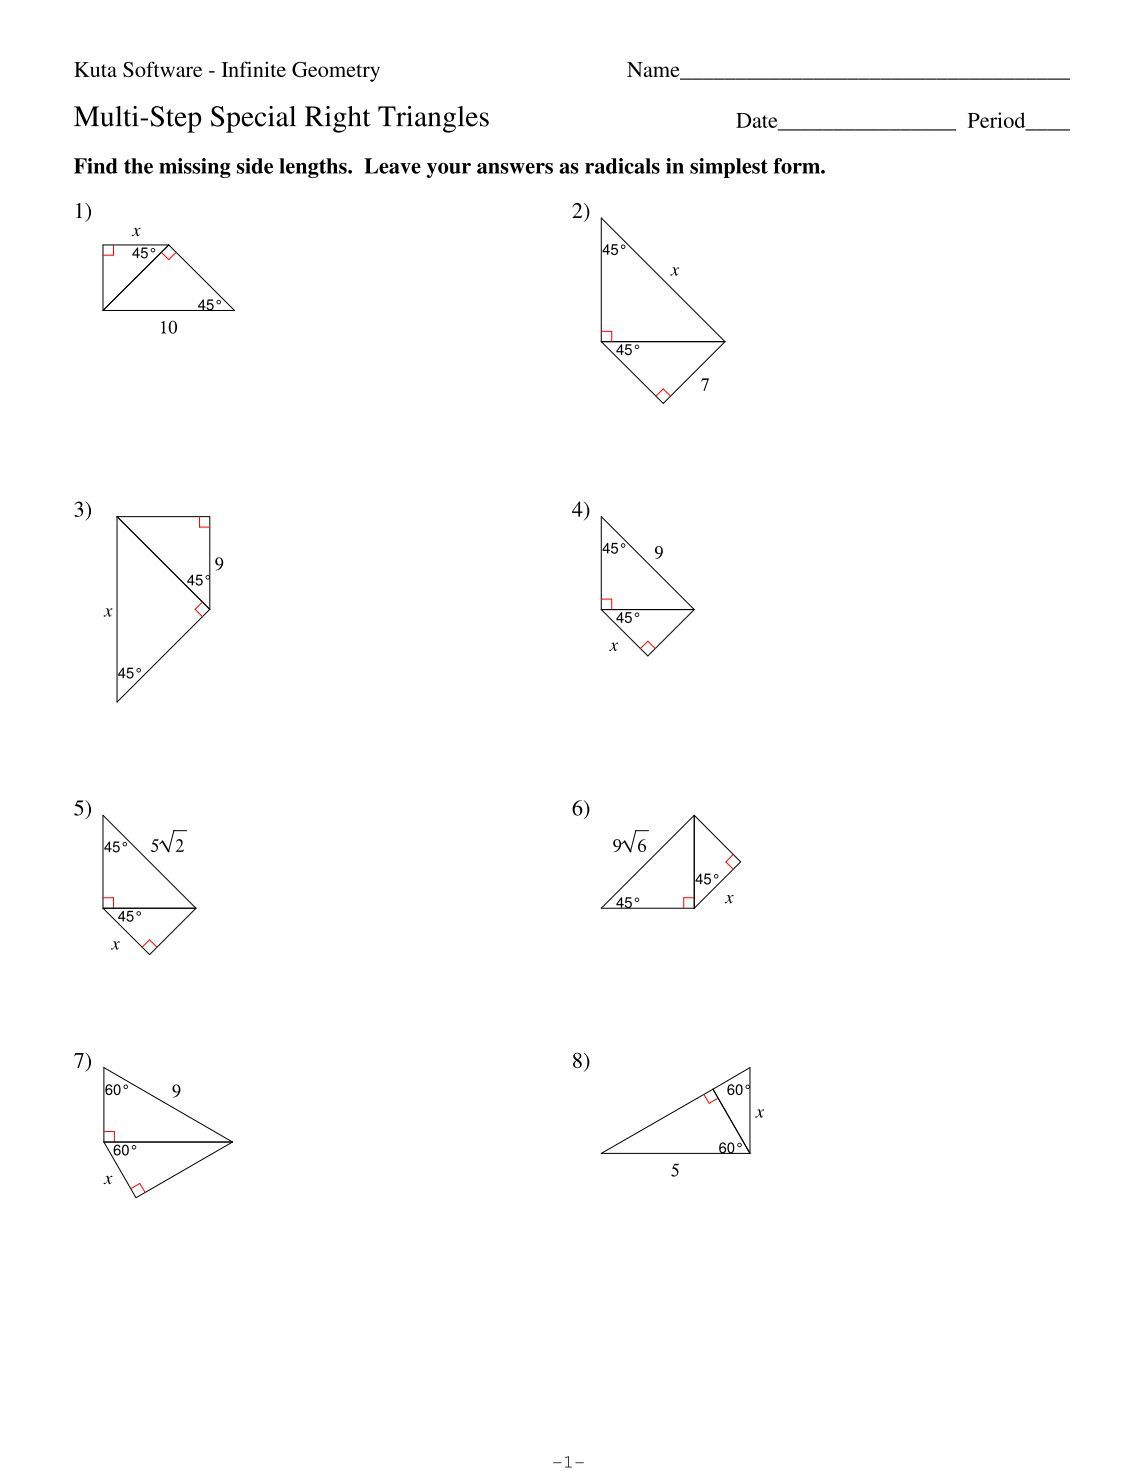 geometry special right triangles worksheet worksheets releaseboard free printable worksheets. Black Bedroom Furniture Sets. Home Design Ideas